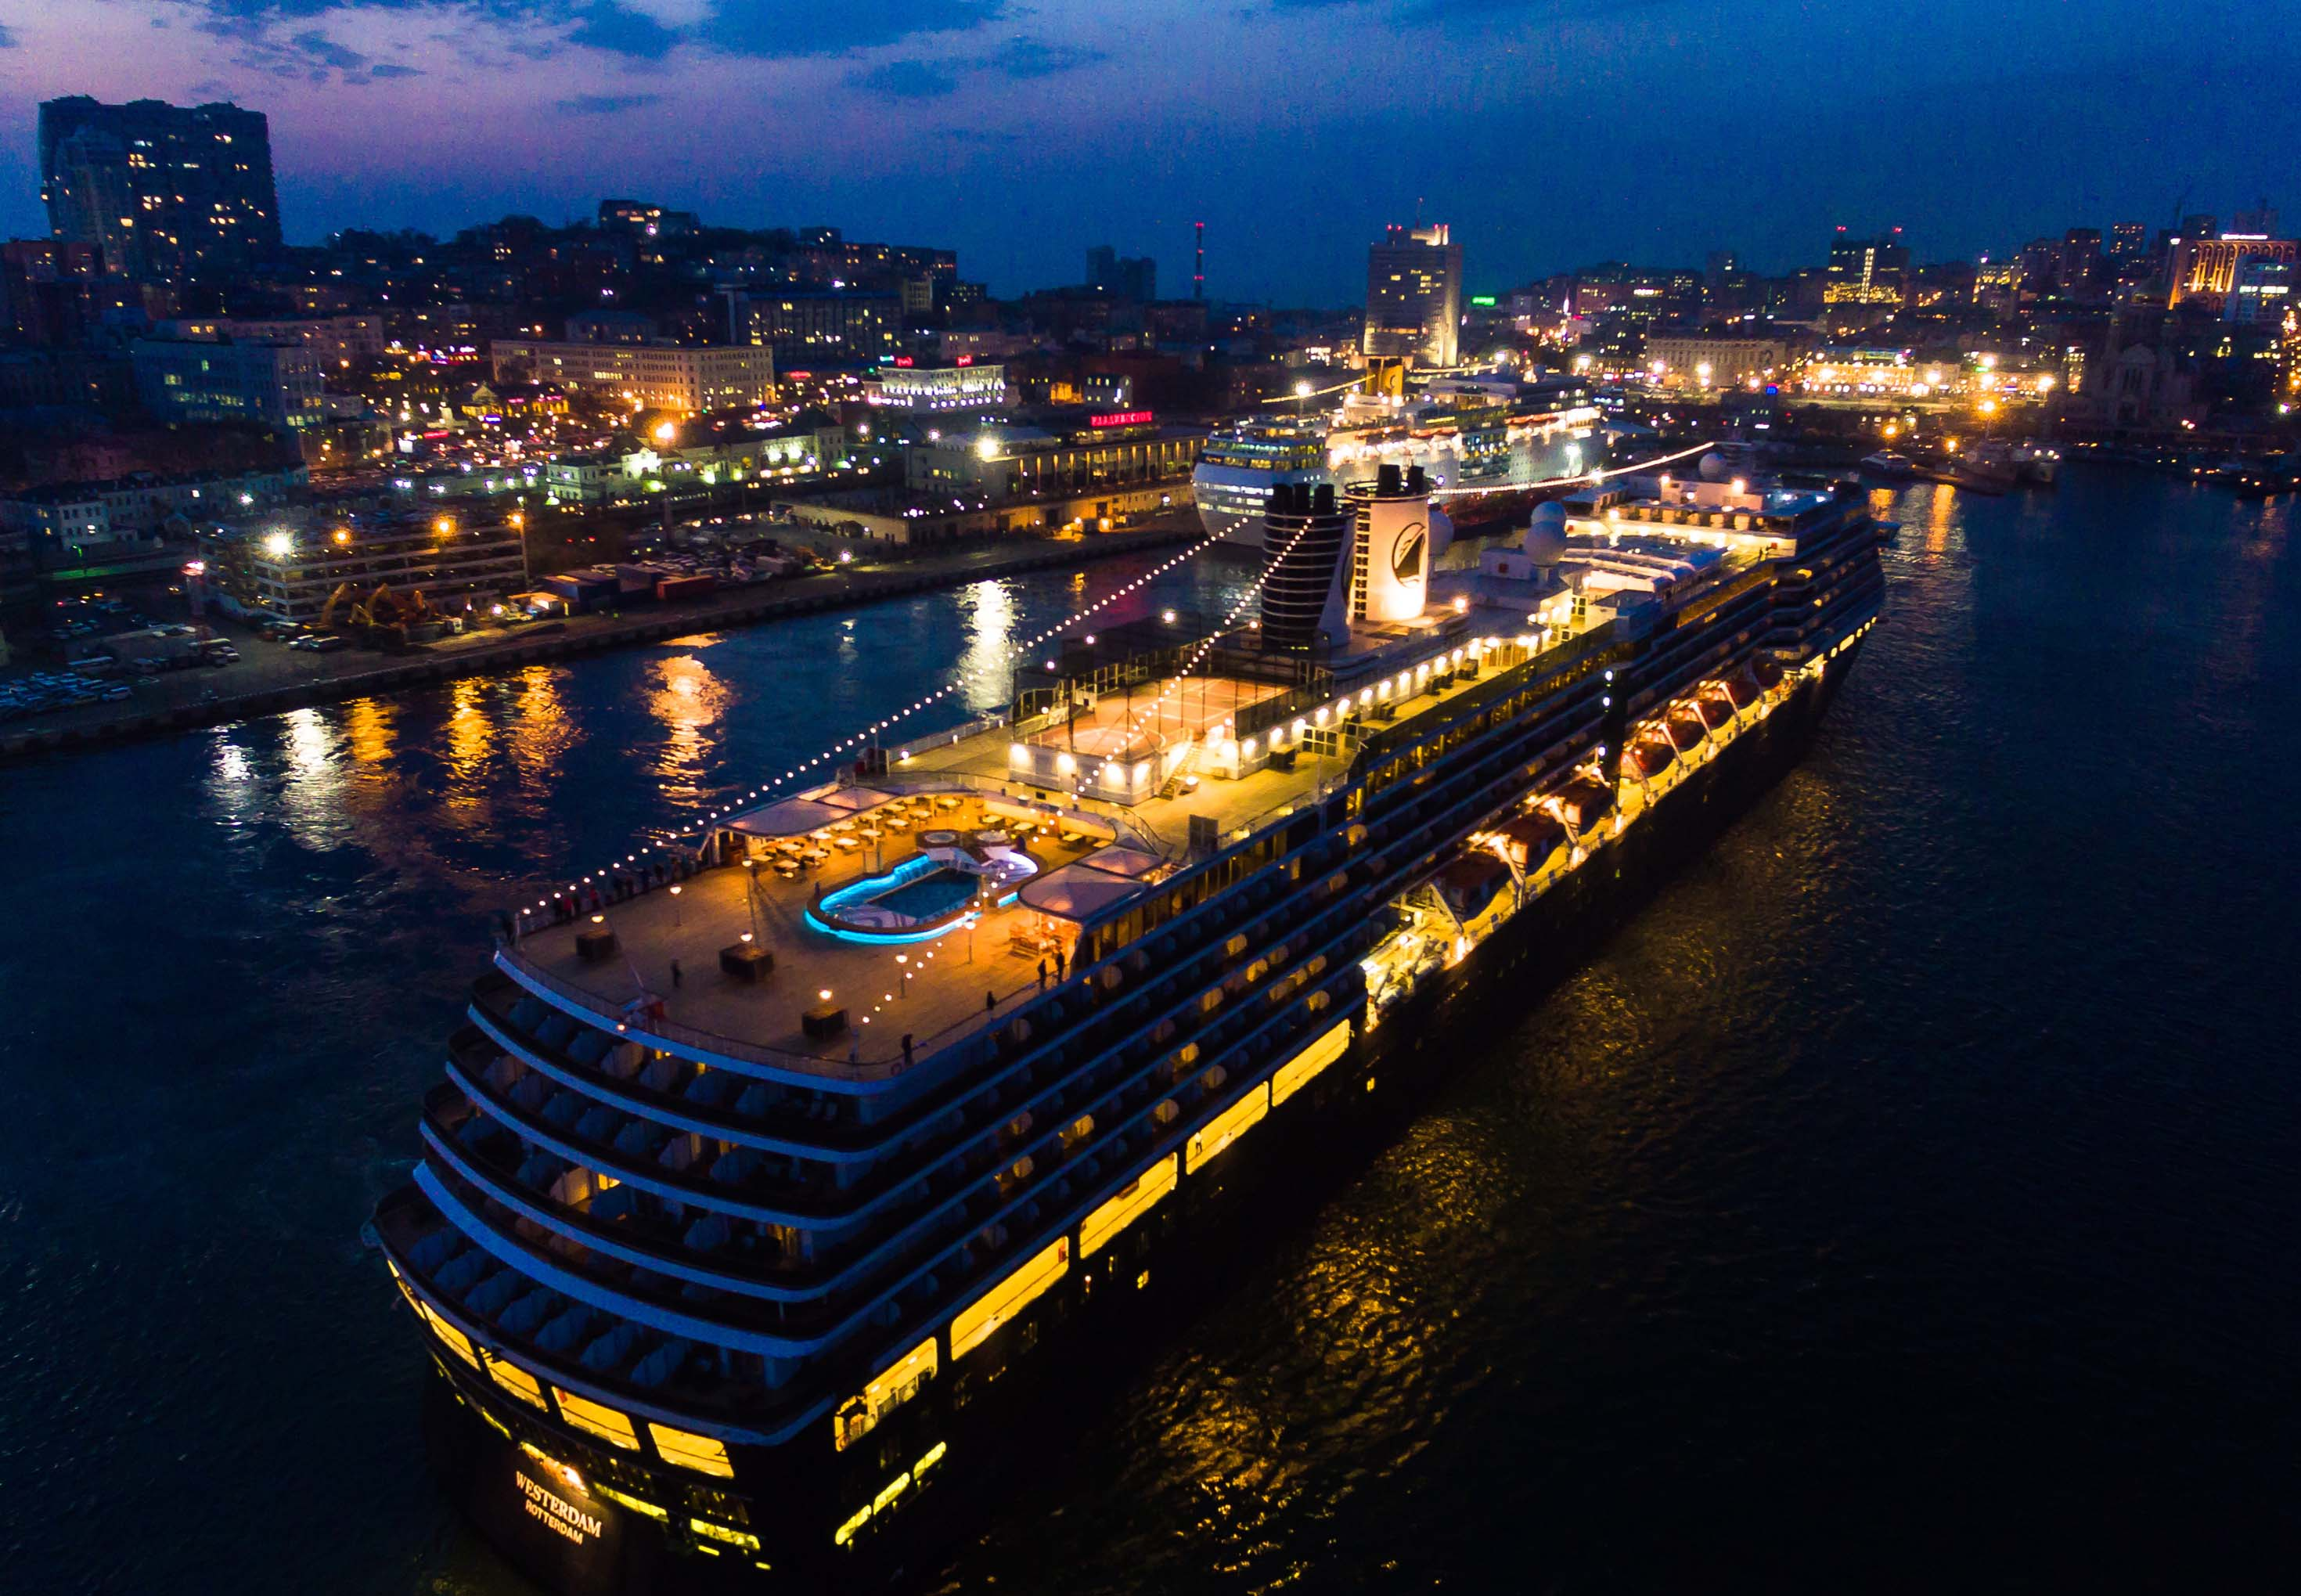 The Westerdam cruise ship is seen at the port of Vladivostok, Russia, in April 2019.